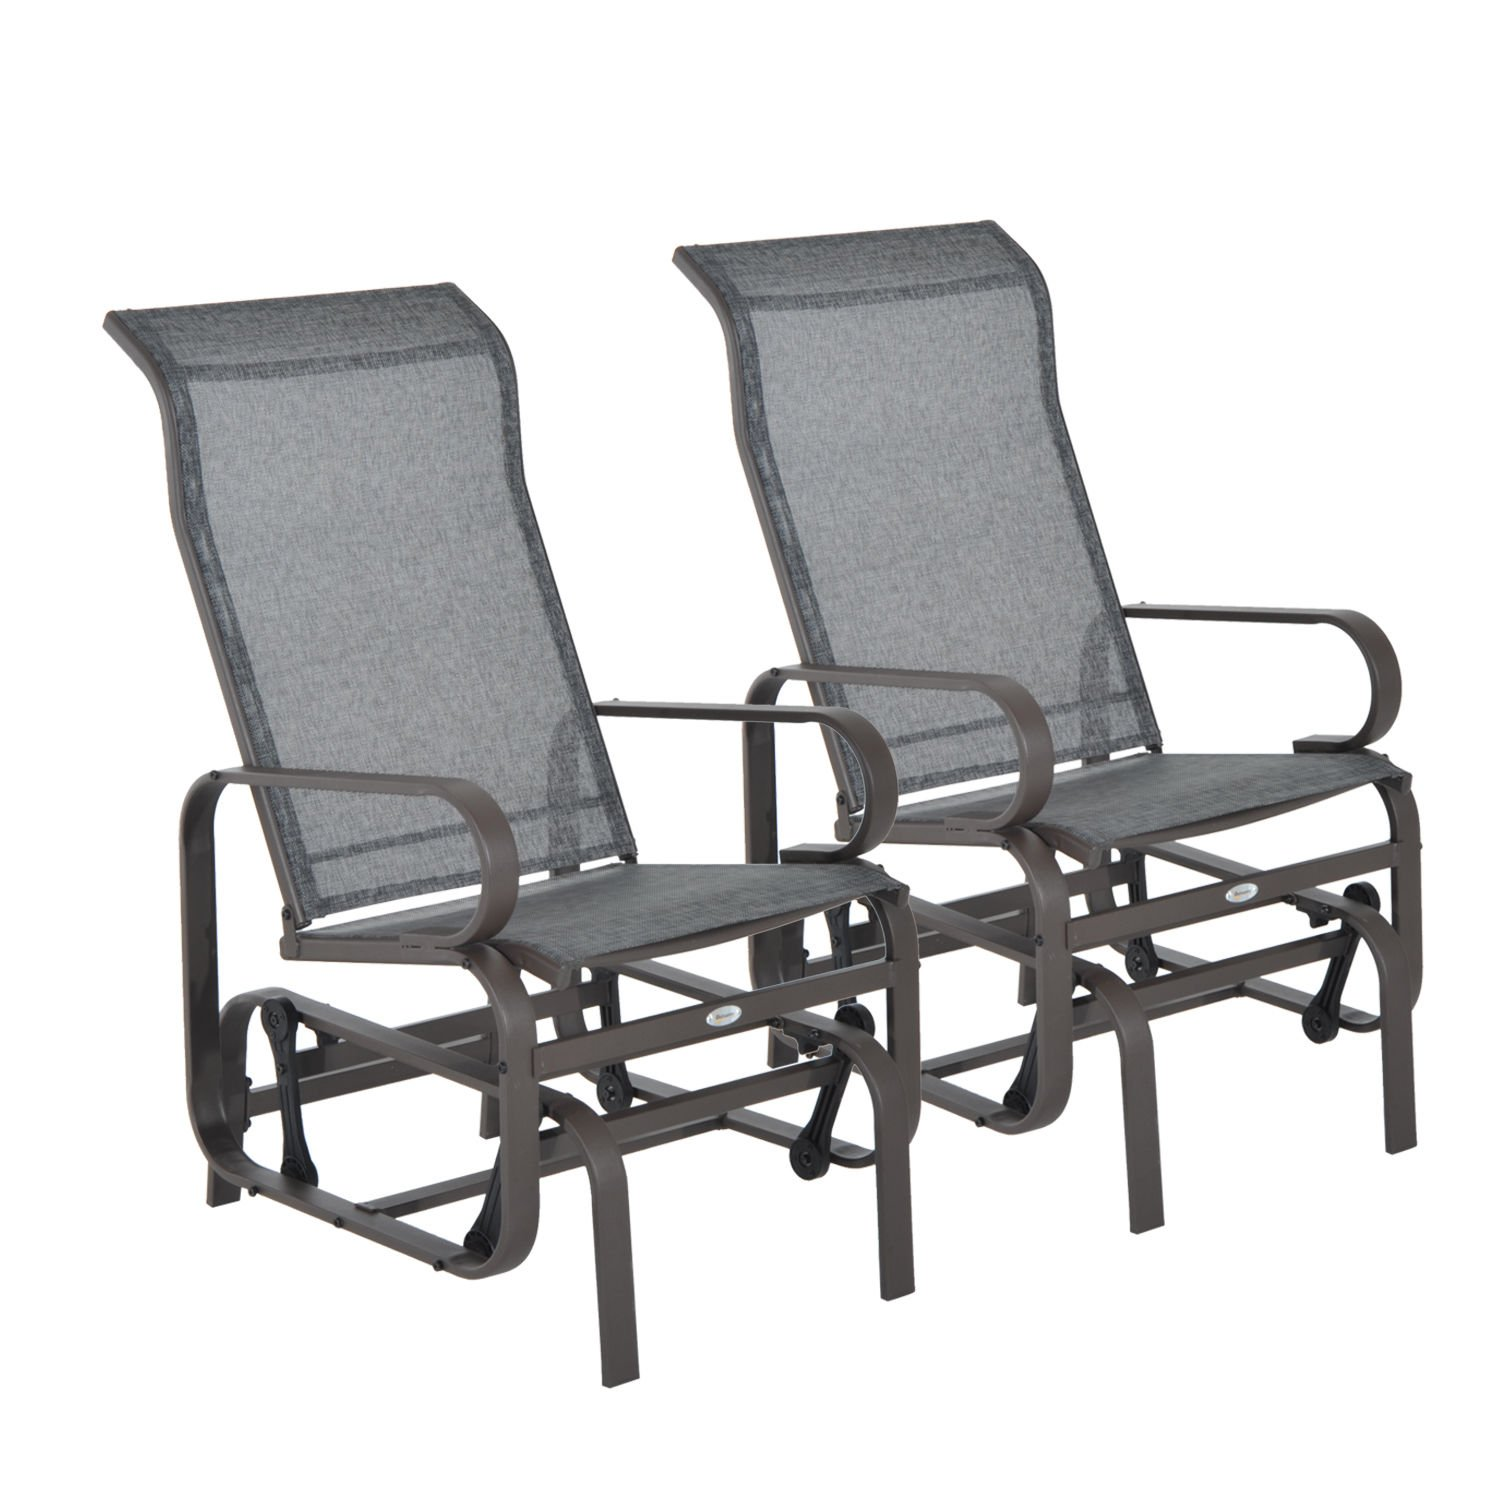 Outsunny Set of 2 Outdoor Patio Glider Rocking Chair Fabric Metal Mesh - Brown